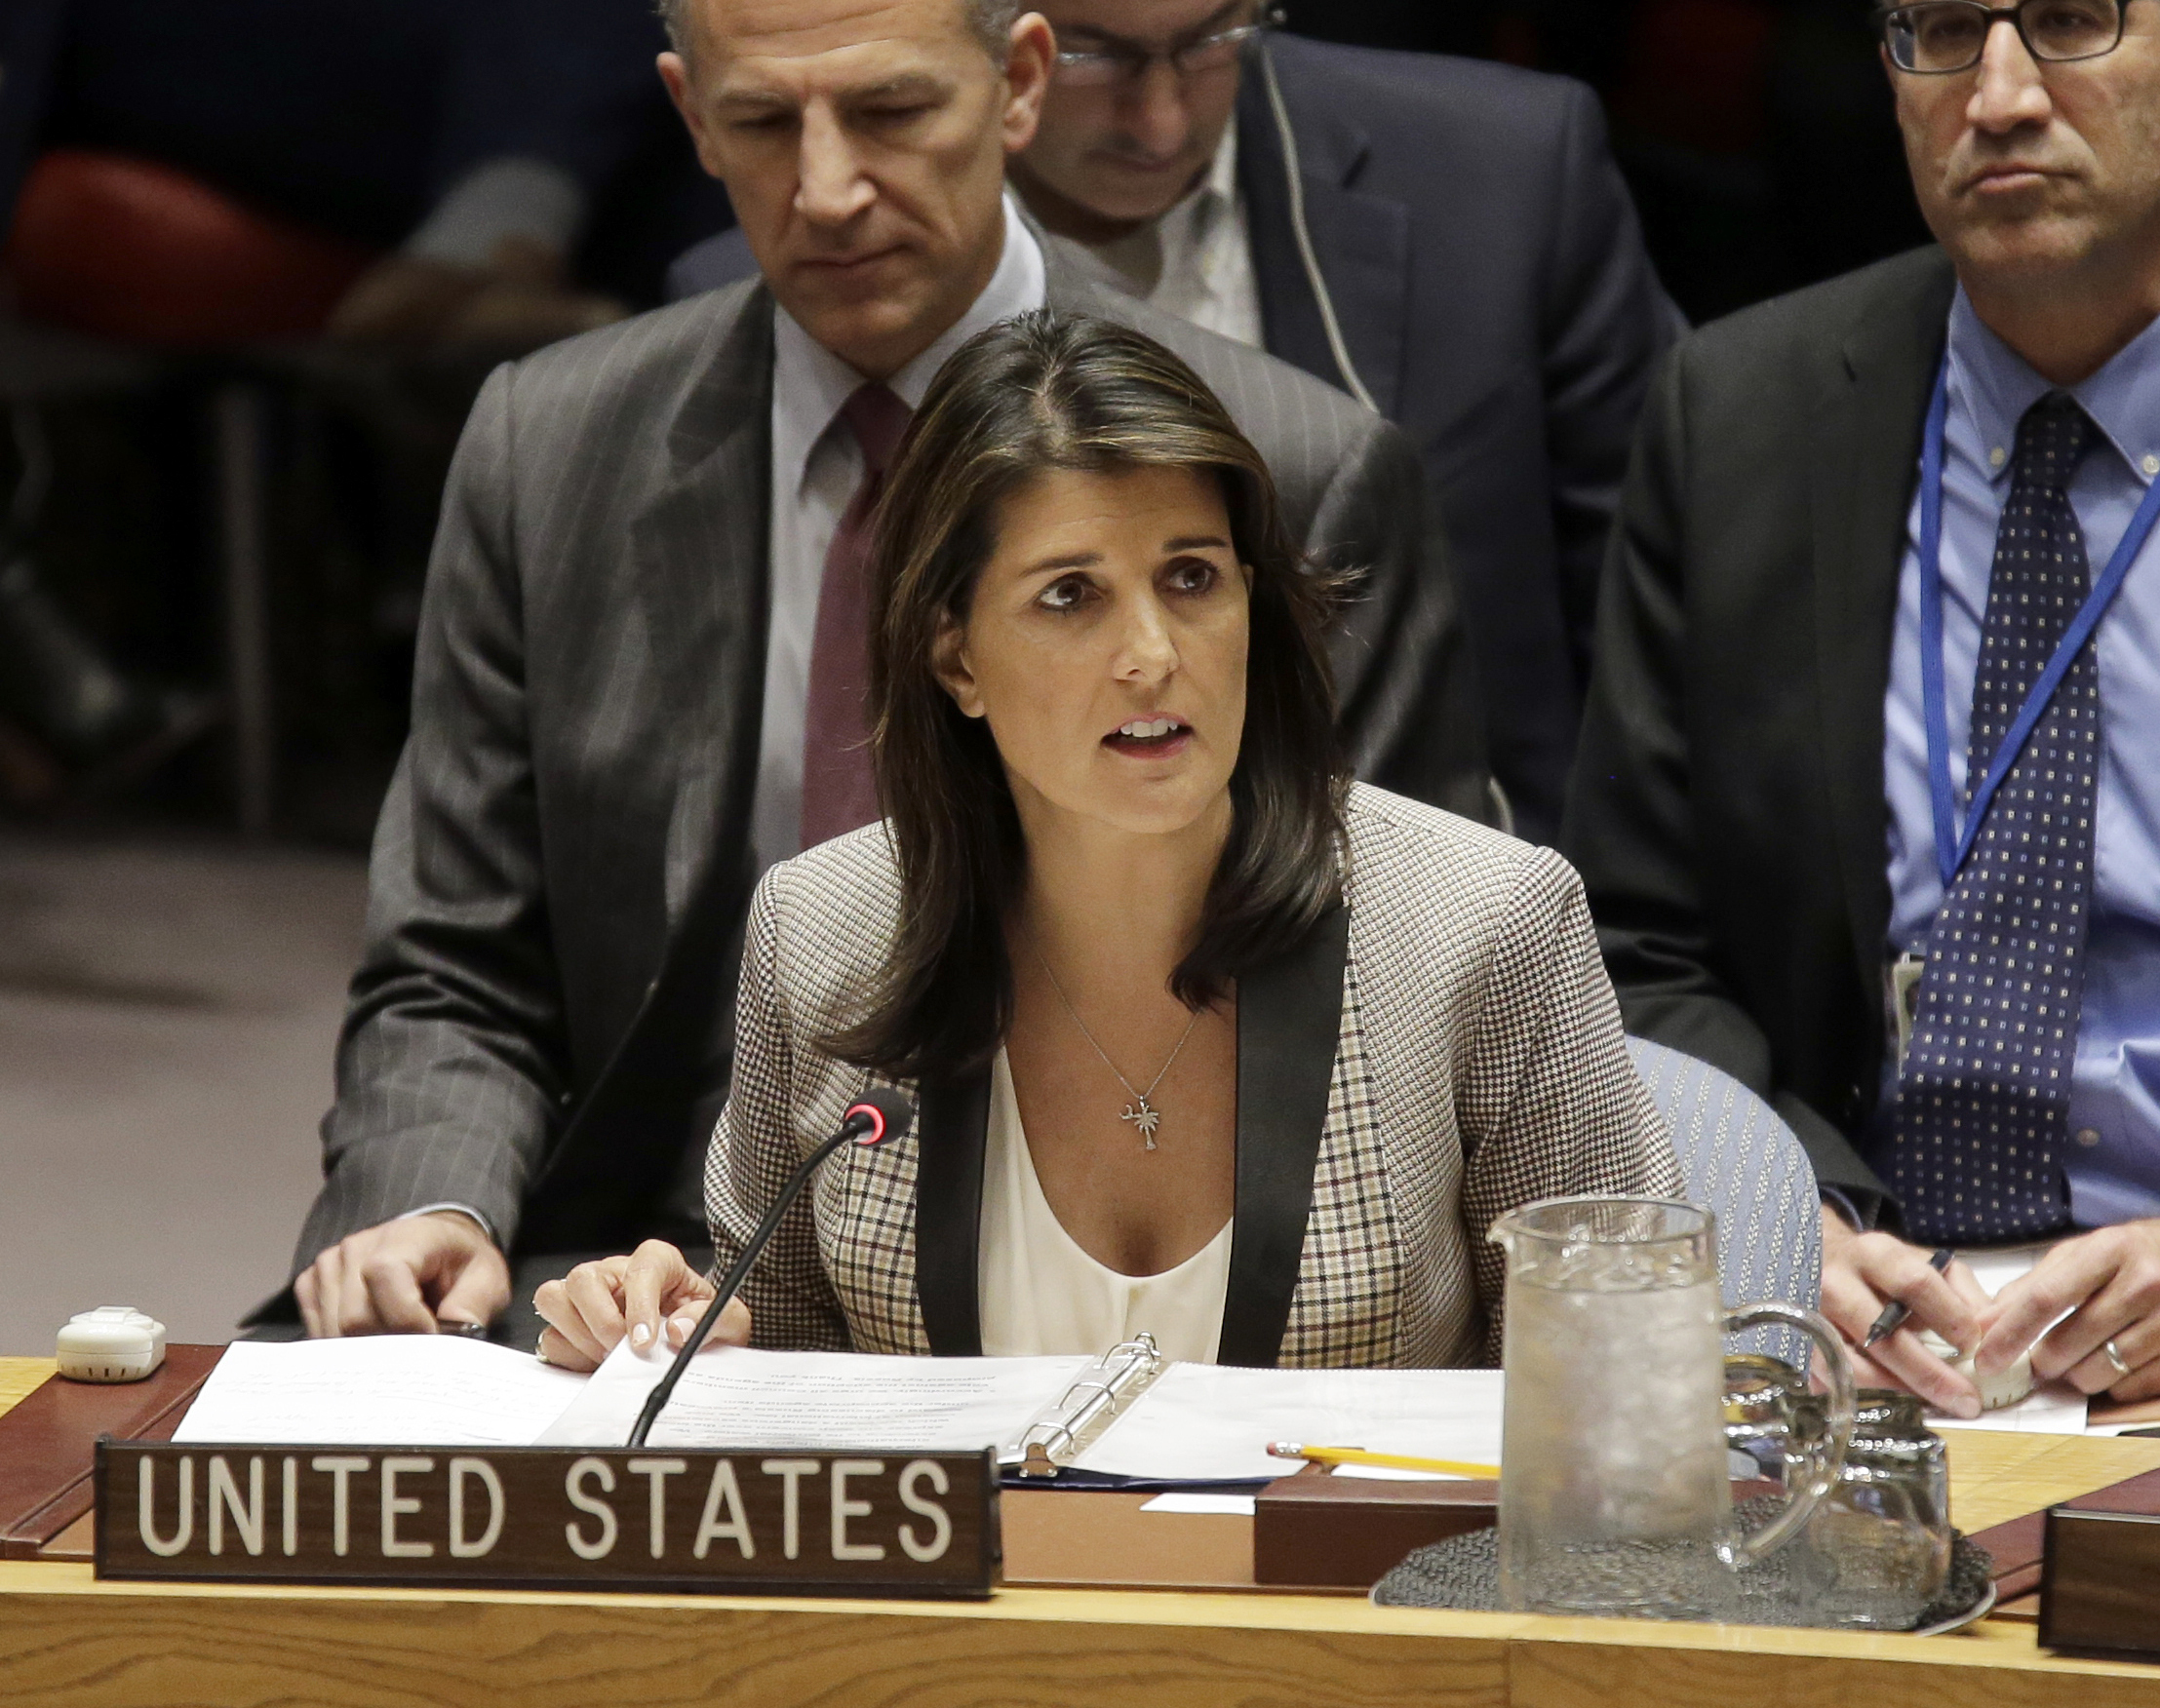 United States Ambassador to the United Nations Nikki Haley speaks during a U.N. Security Council meeting about the escalating tensions between the Ukraine and Russia, at United Nations headquarters in New York, Nov. 26, 2018.